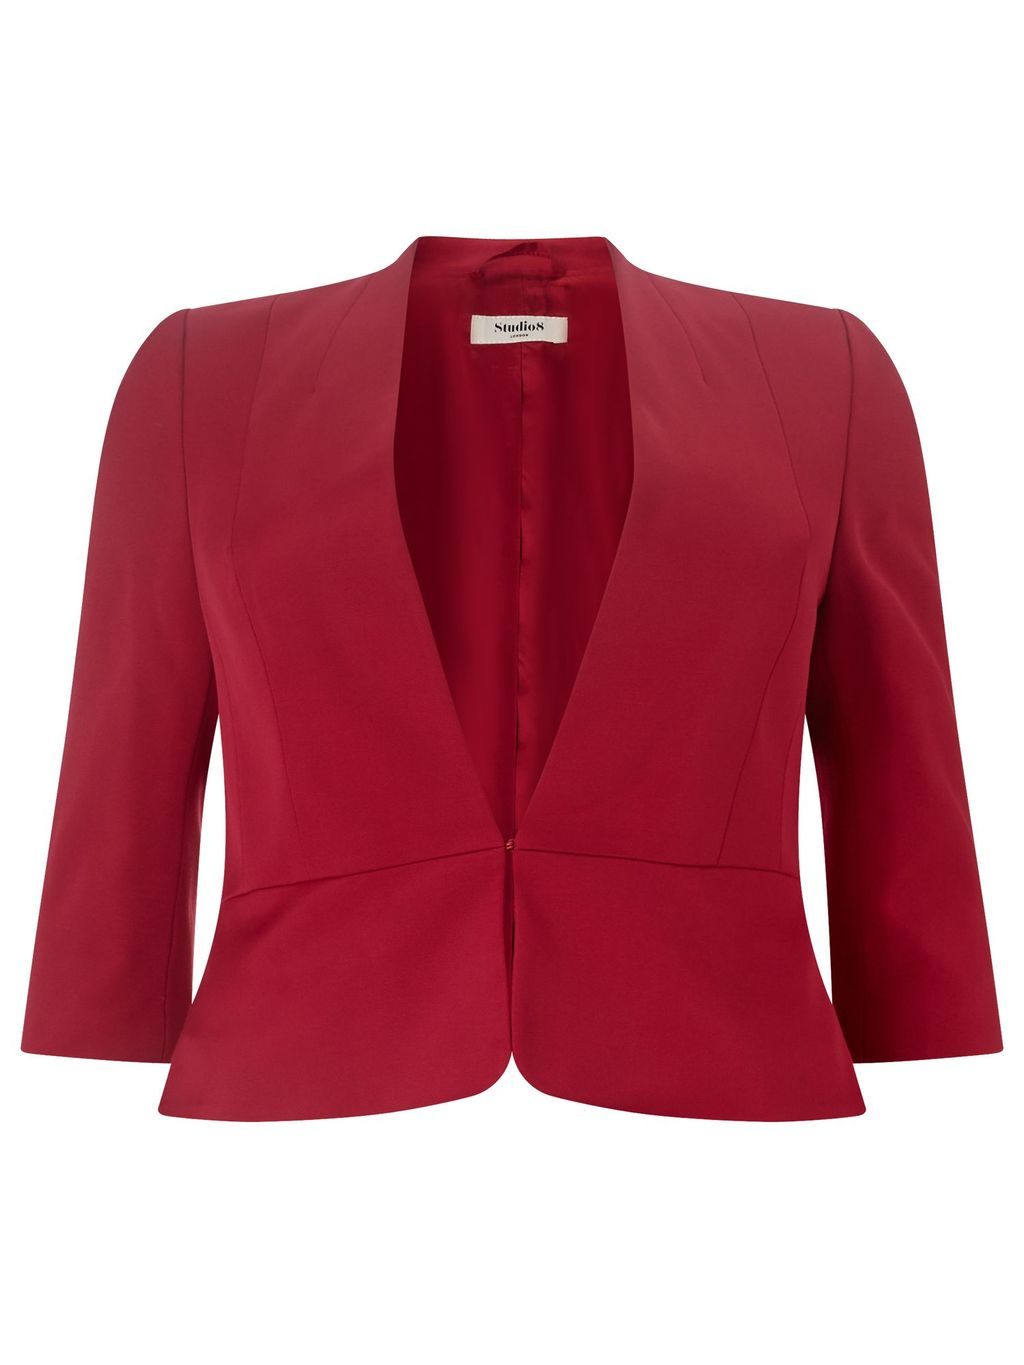 Odette Jacket, Pink - pattern: plain; style: single breasted blazer; collar: round collar/collarless; length: standard; fit: tailored/fitted; fibres: viscose/rayon - stretch; occasions: occasion; sleeve length: 3/4 length; sleeve style: standard; collar break: low/open; pattern type: fabric; texture group: woven light midweight; predominant colour: raspberry; season: s/s 2016; wardrobe: event